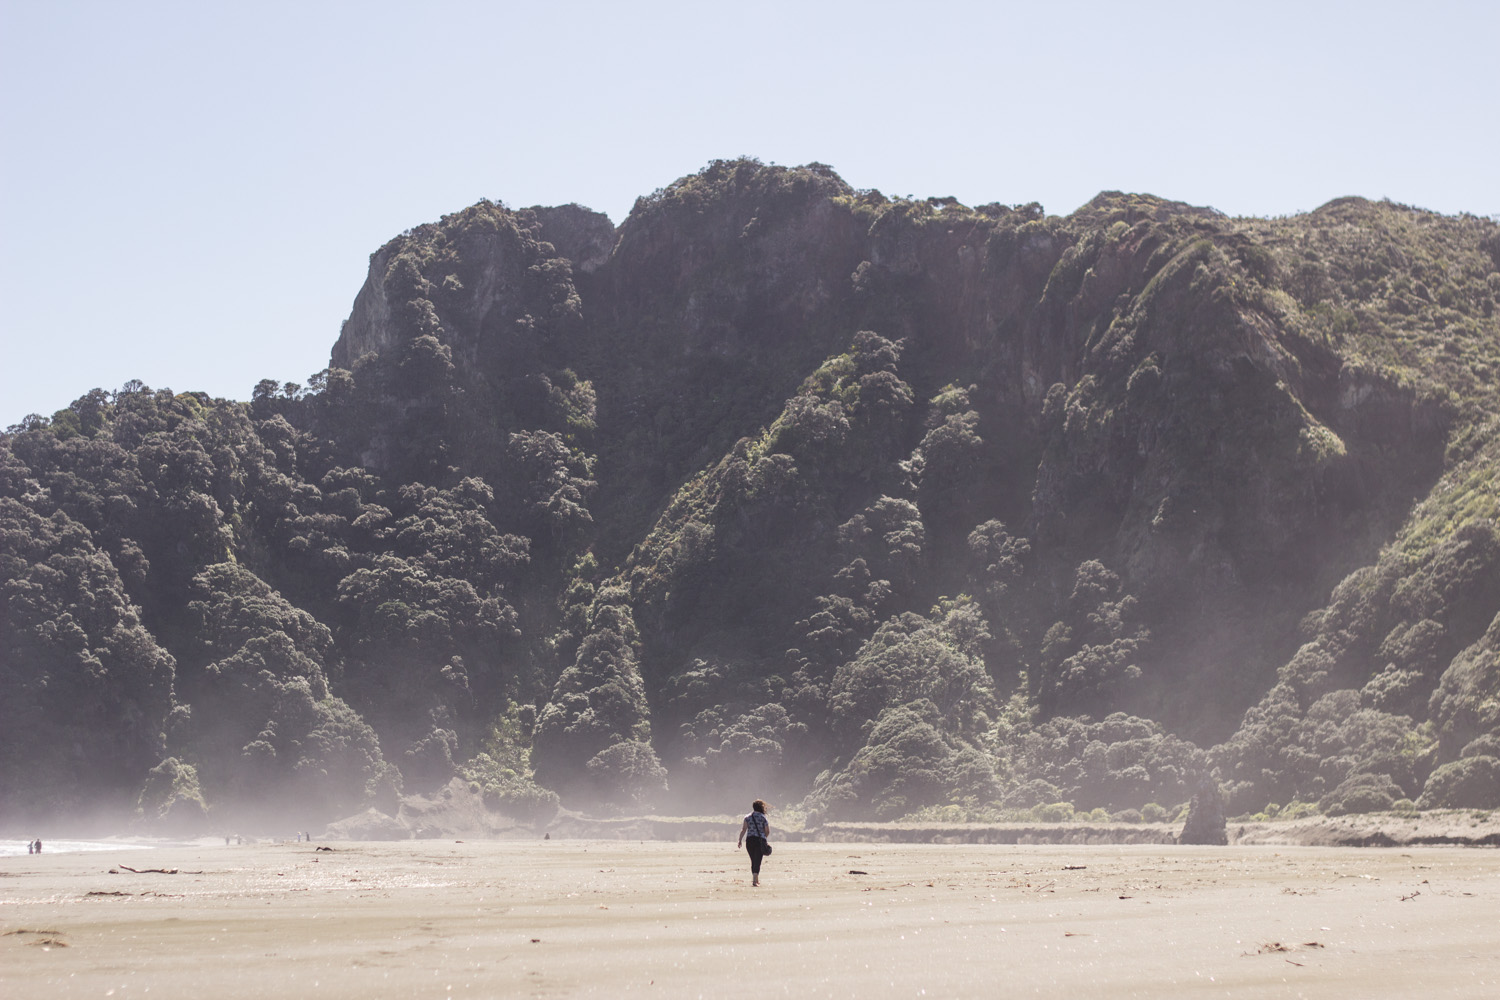 Me and my friends were newly in New Zealand and full of awe at its scenery. • North Island, New Zealand •